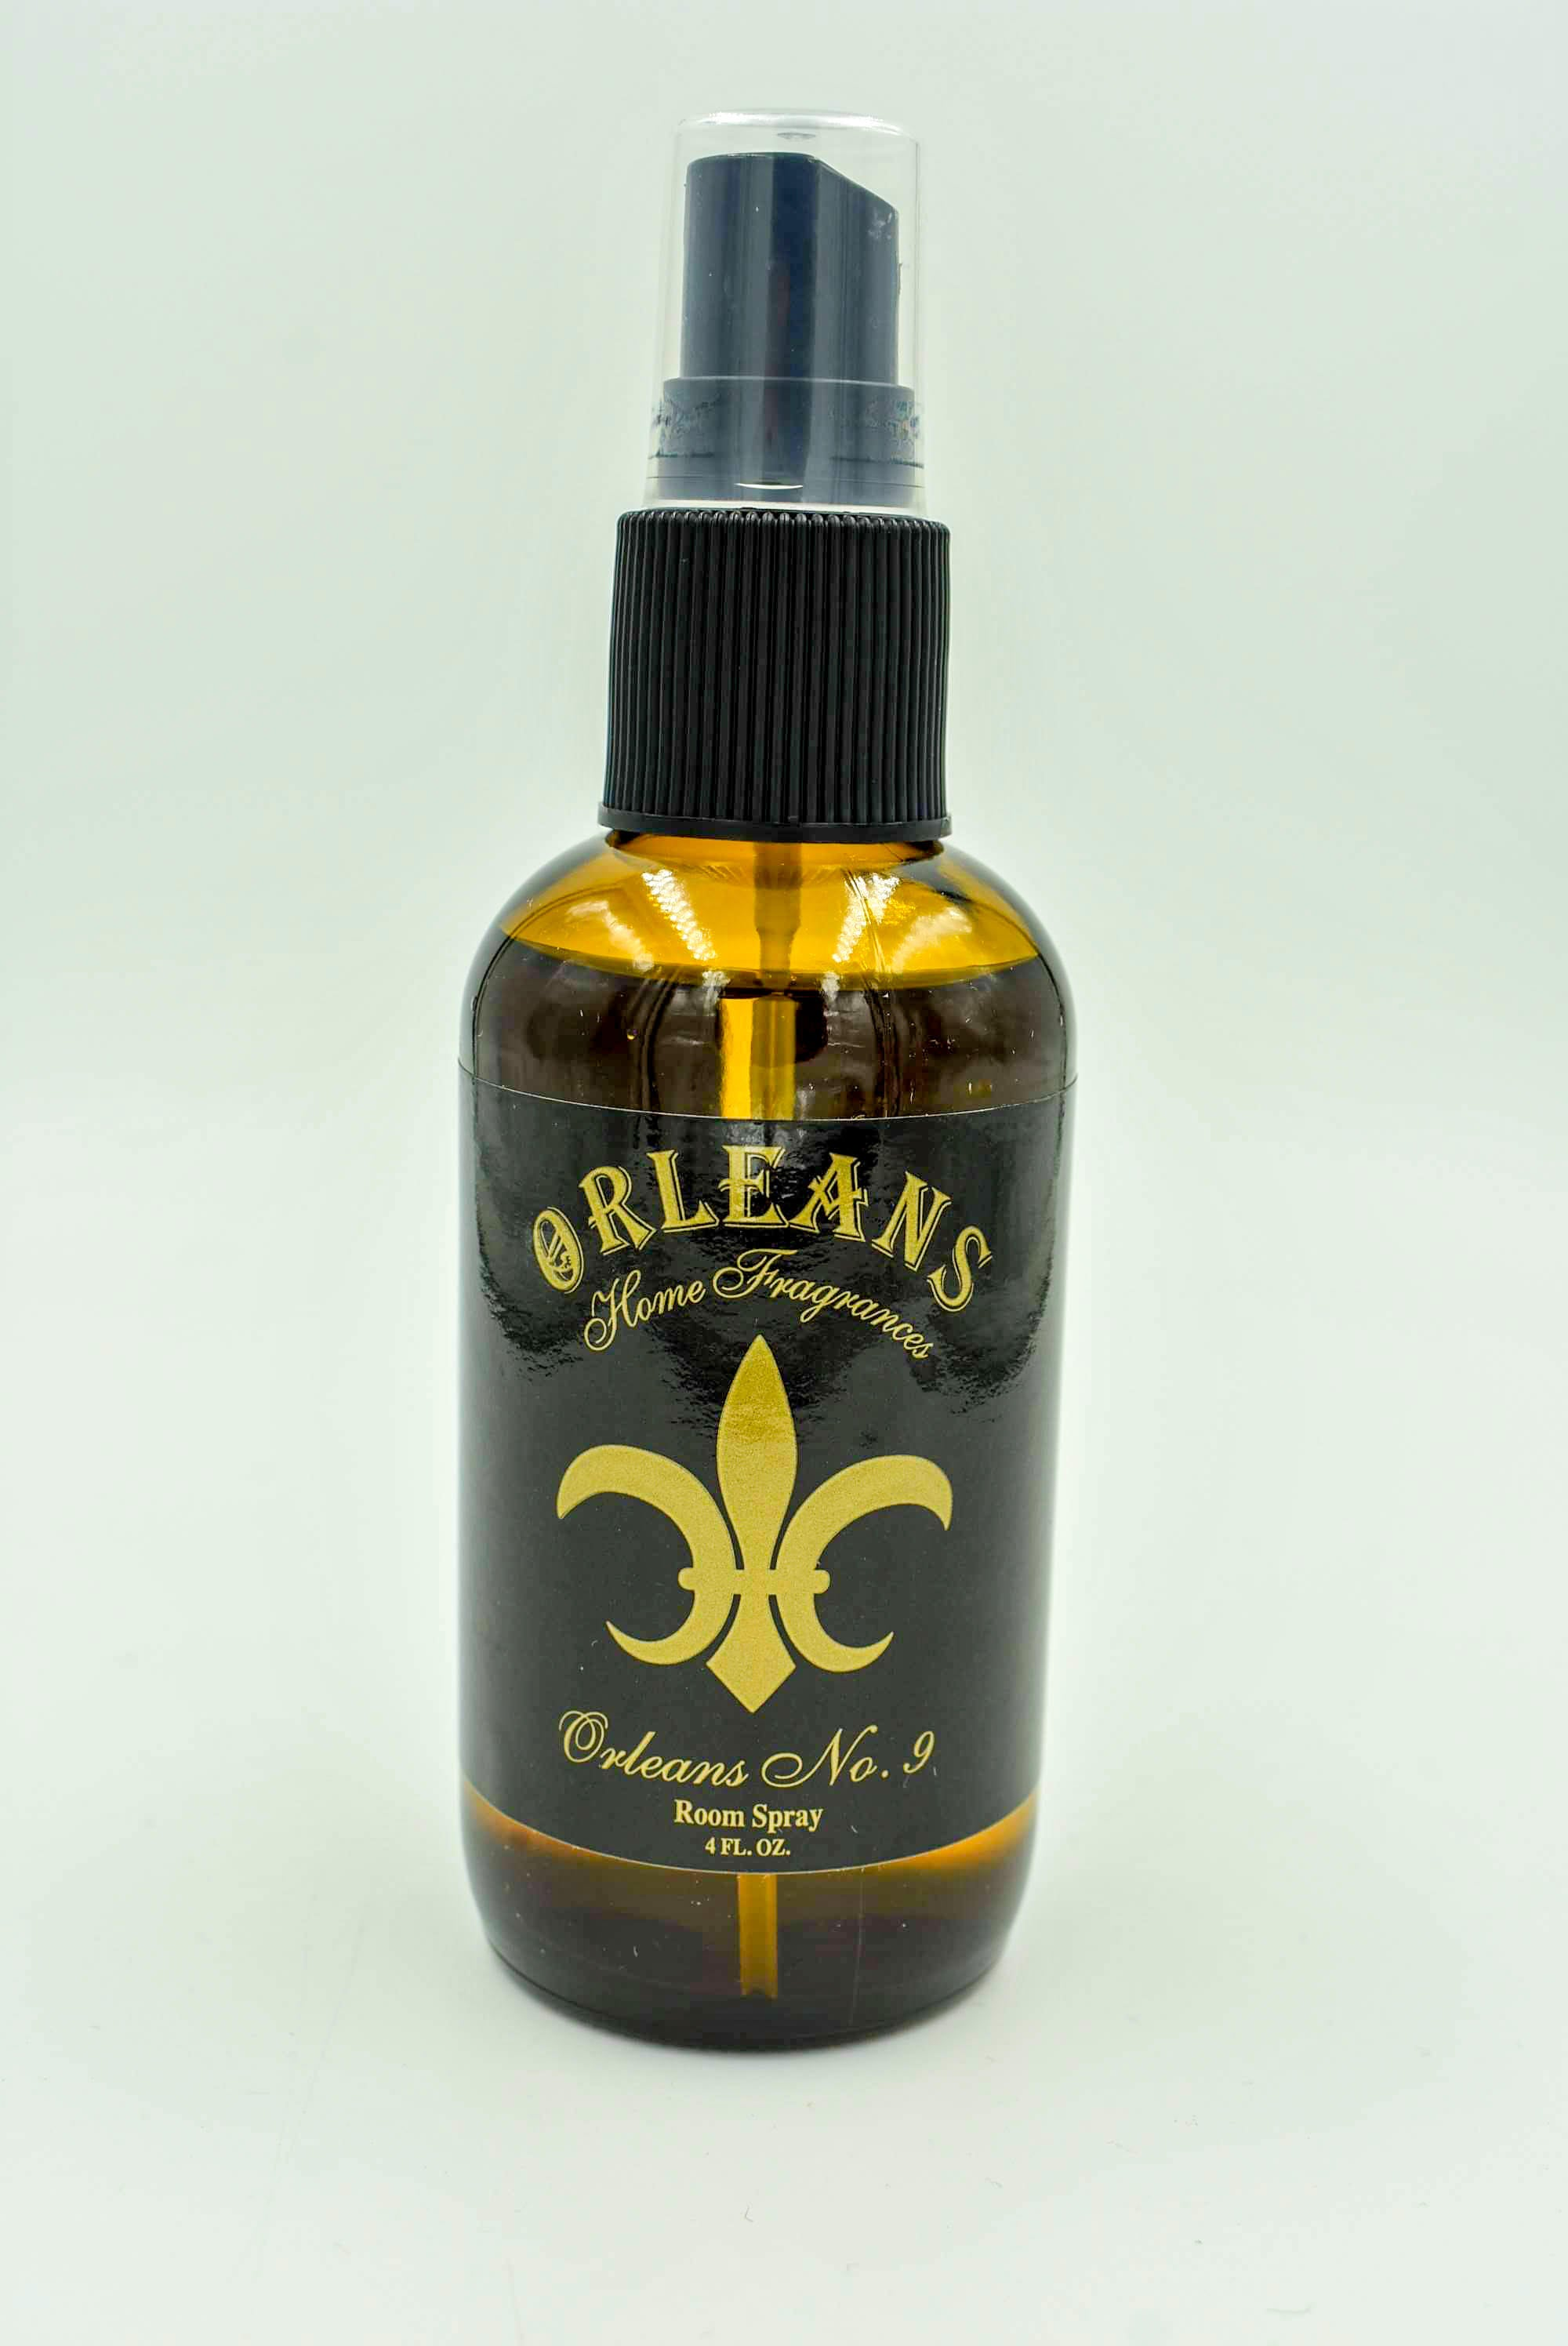 Orleans No. 9 Room Spray